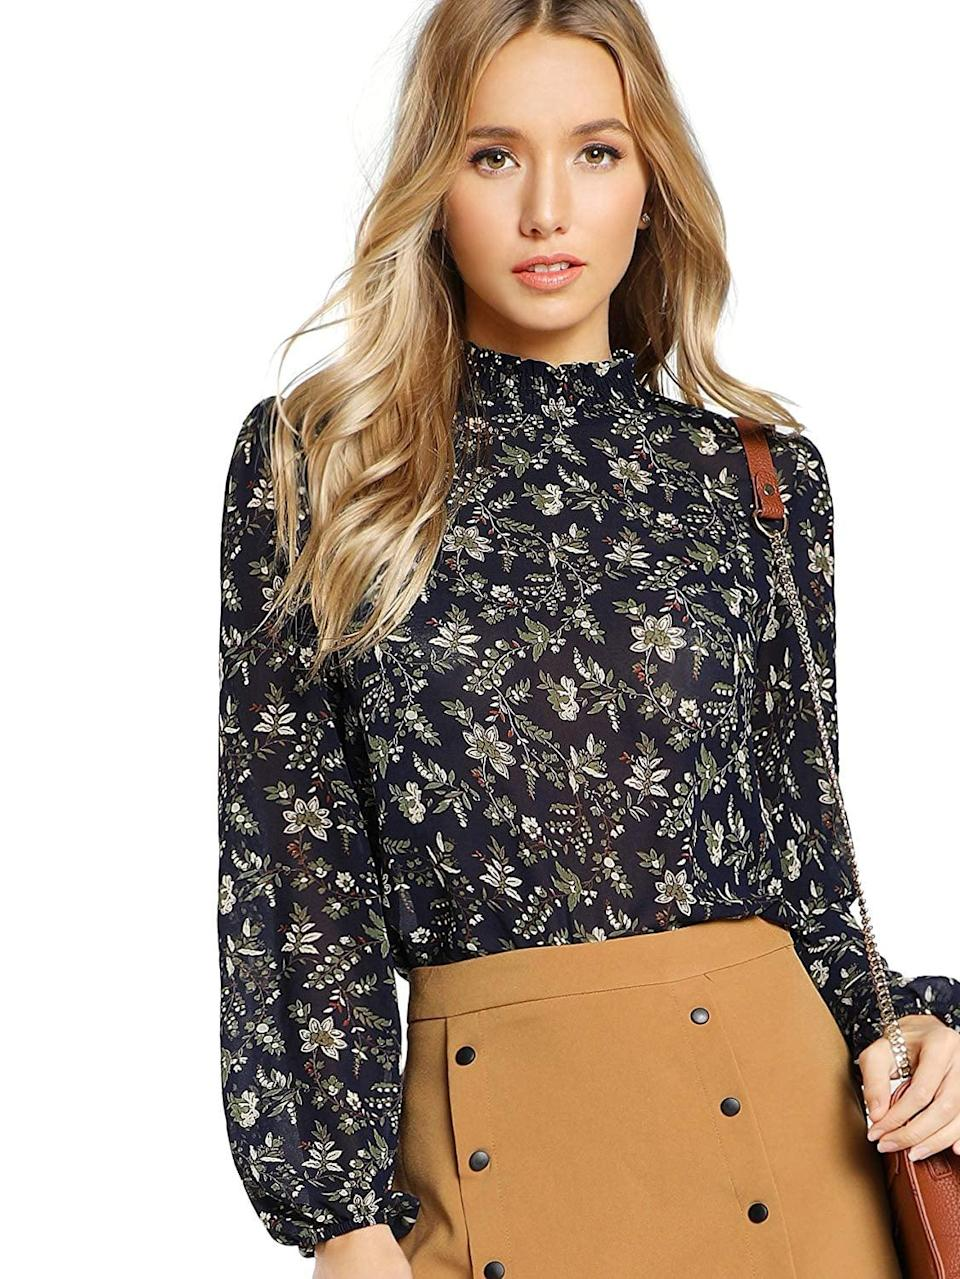 <p>This <span>Floerns Floral Print Chiffon Blouse</span> ($24) will pair well with a button-front skirt or sleek trousers. It comes in several prints, so you can rotate them for your weekday uniform.</p>